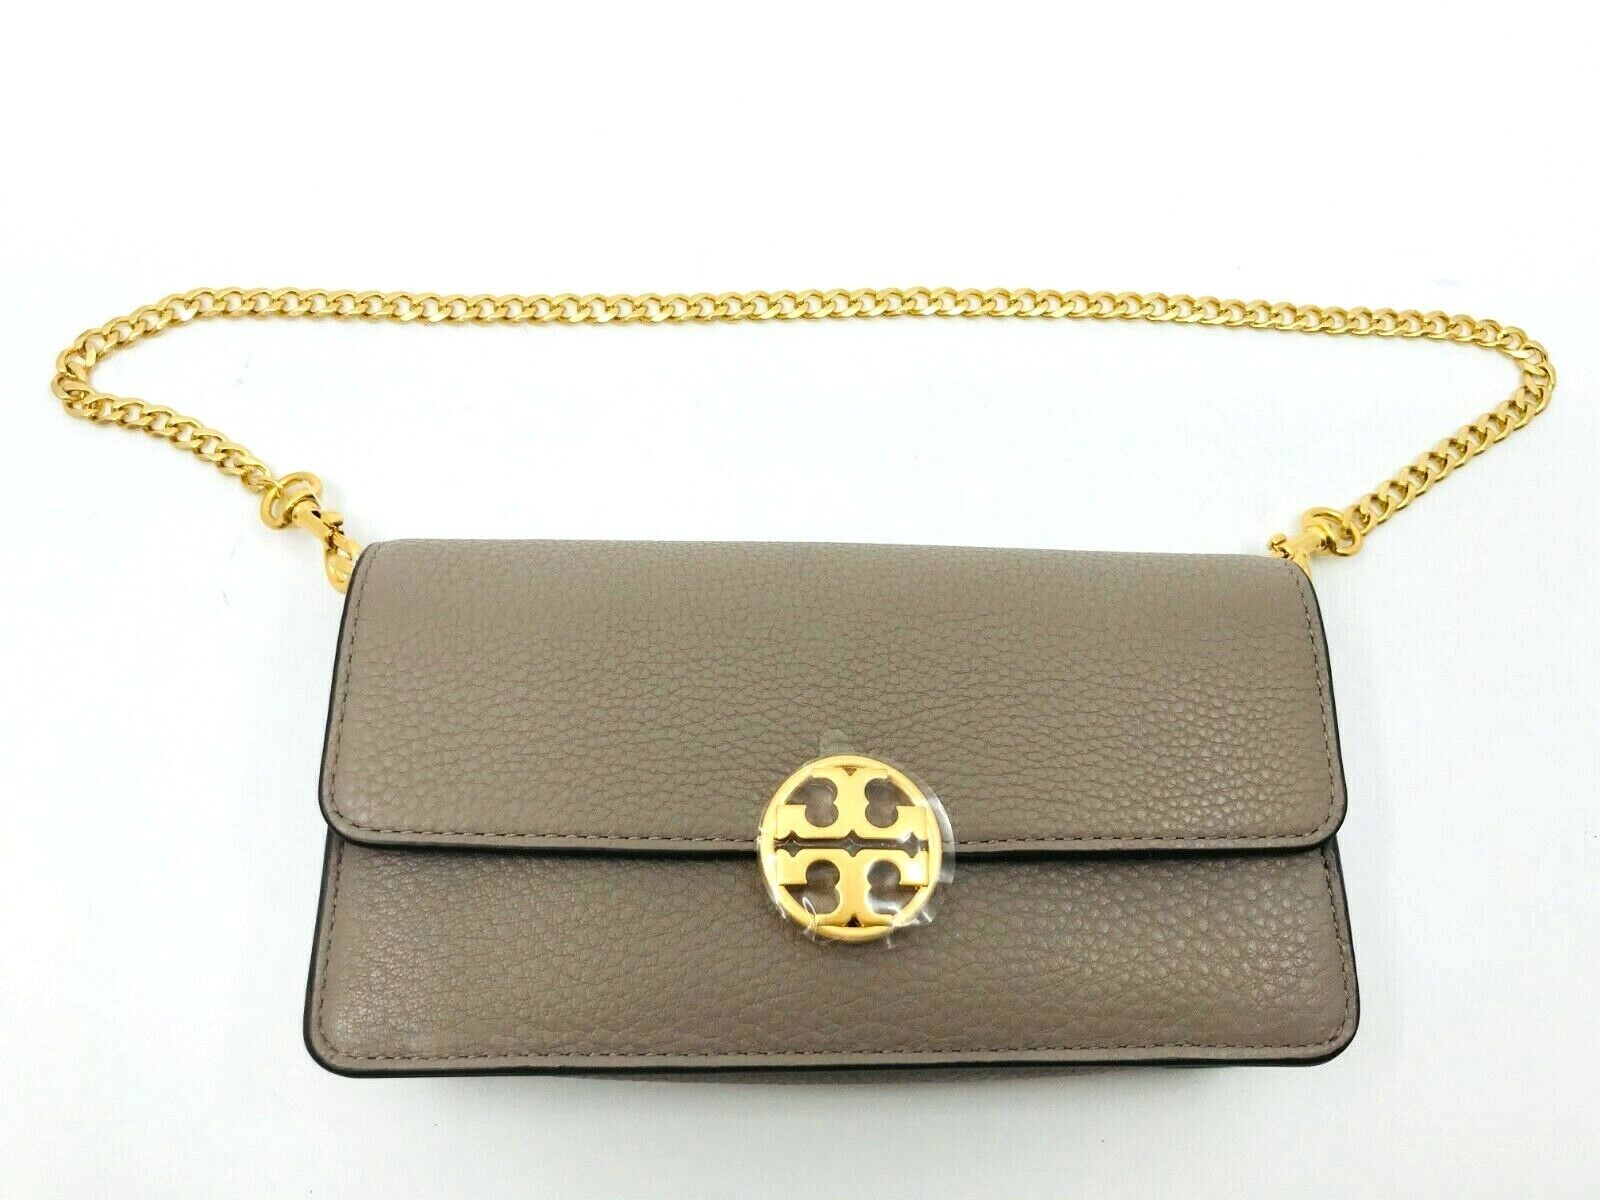 Tory Burch NEW Gray Chelsea Chain Pouch Pebbled Leather Mini Crossbody Bag 228